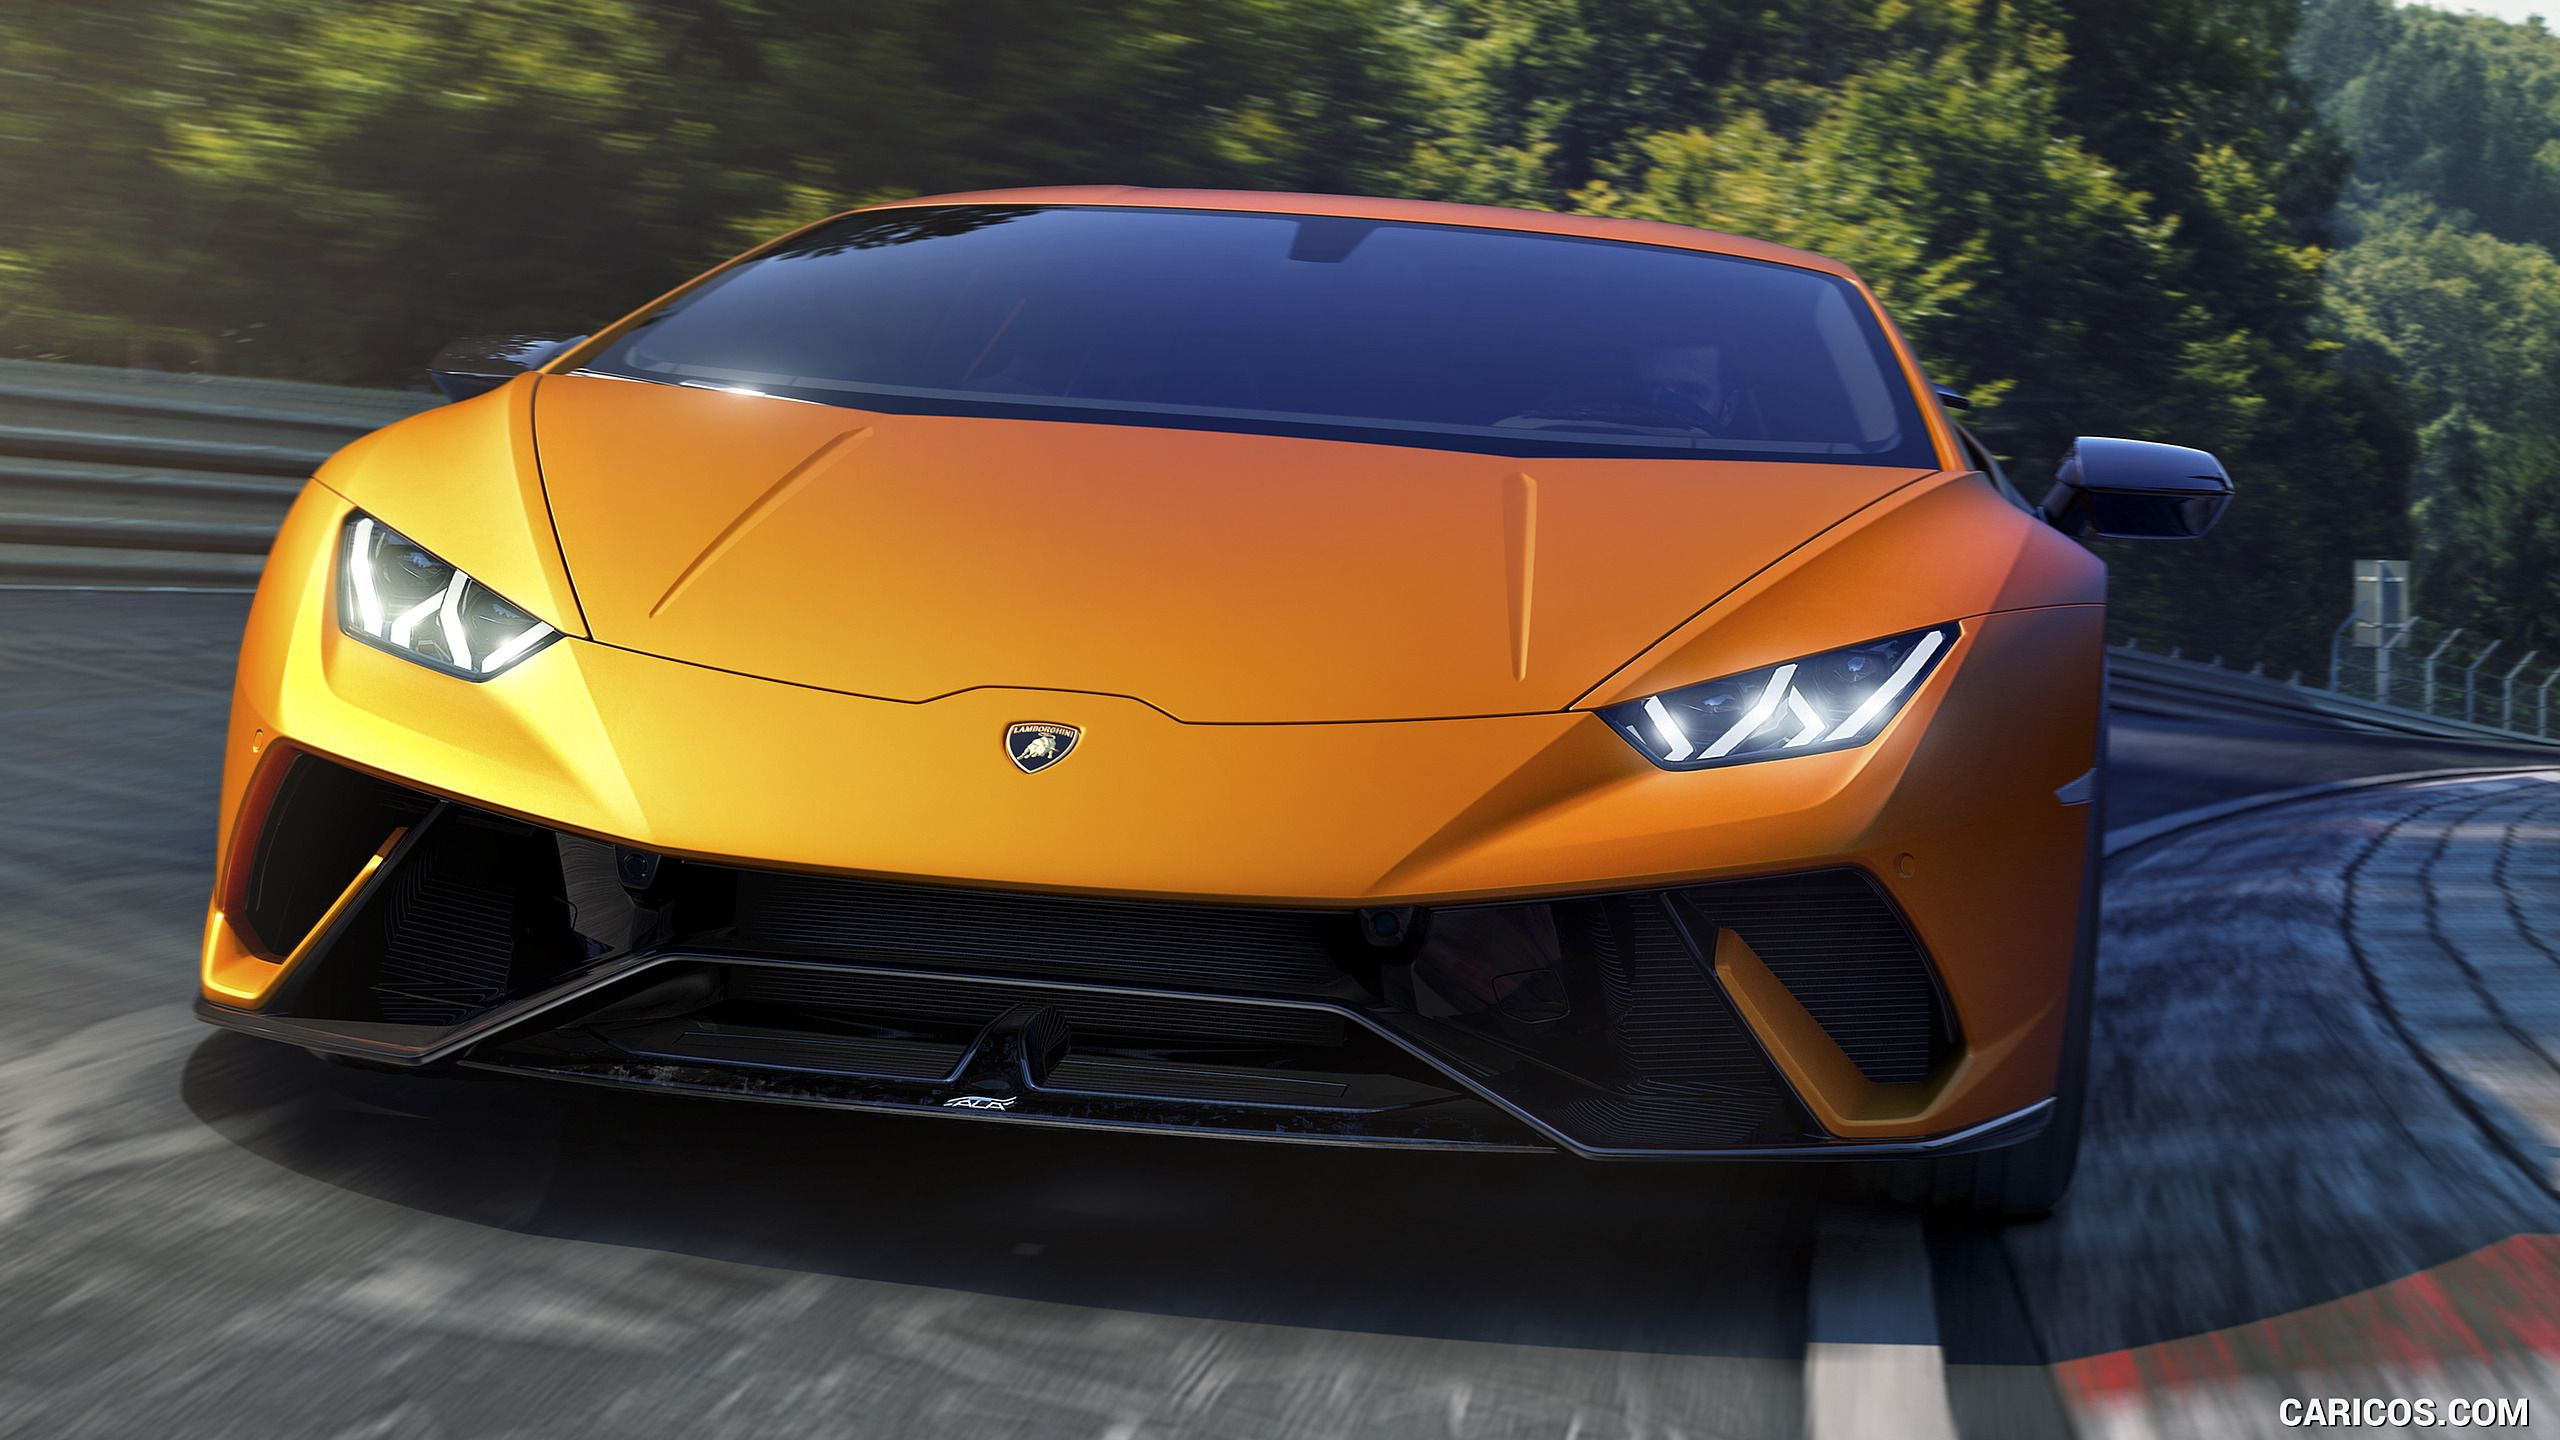 2018 Lamborghini Huracan Performante Wallpaper Whips Pinterest